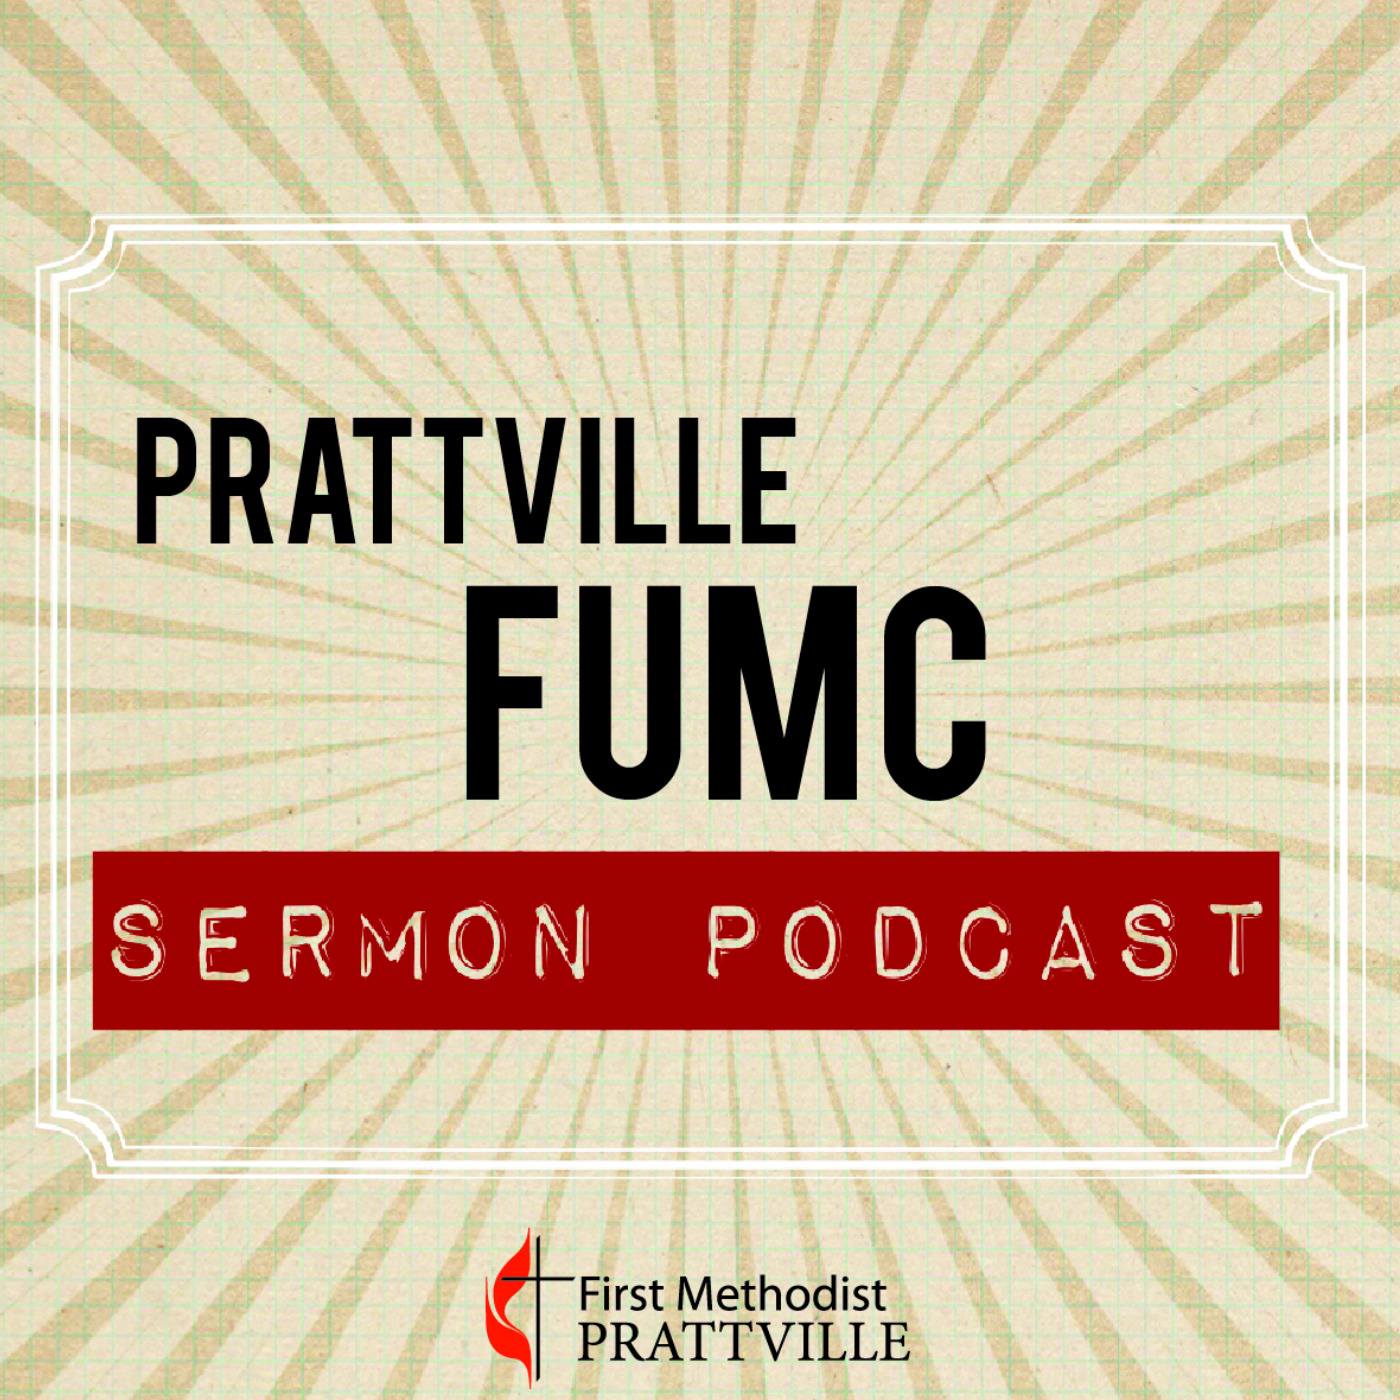 First United Methodist Church of Prattville Sermon Podcast